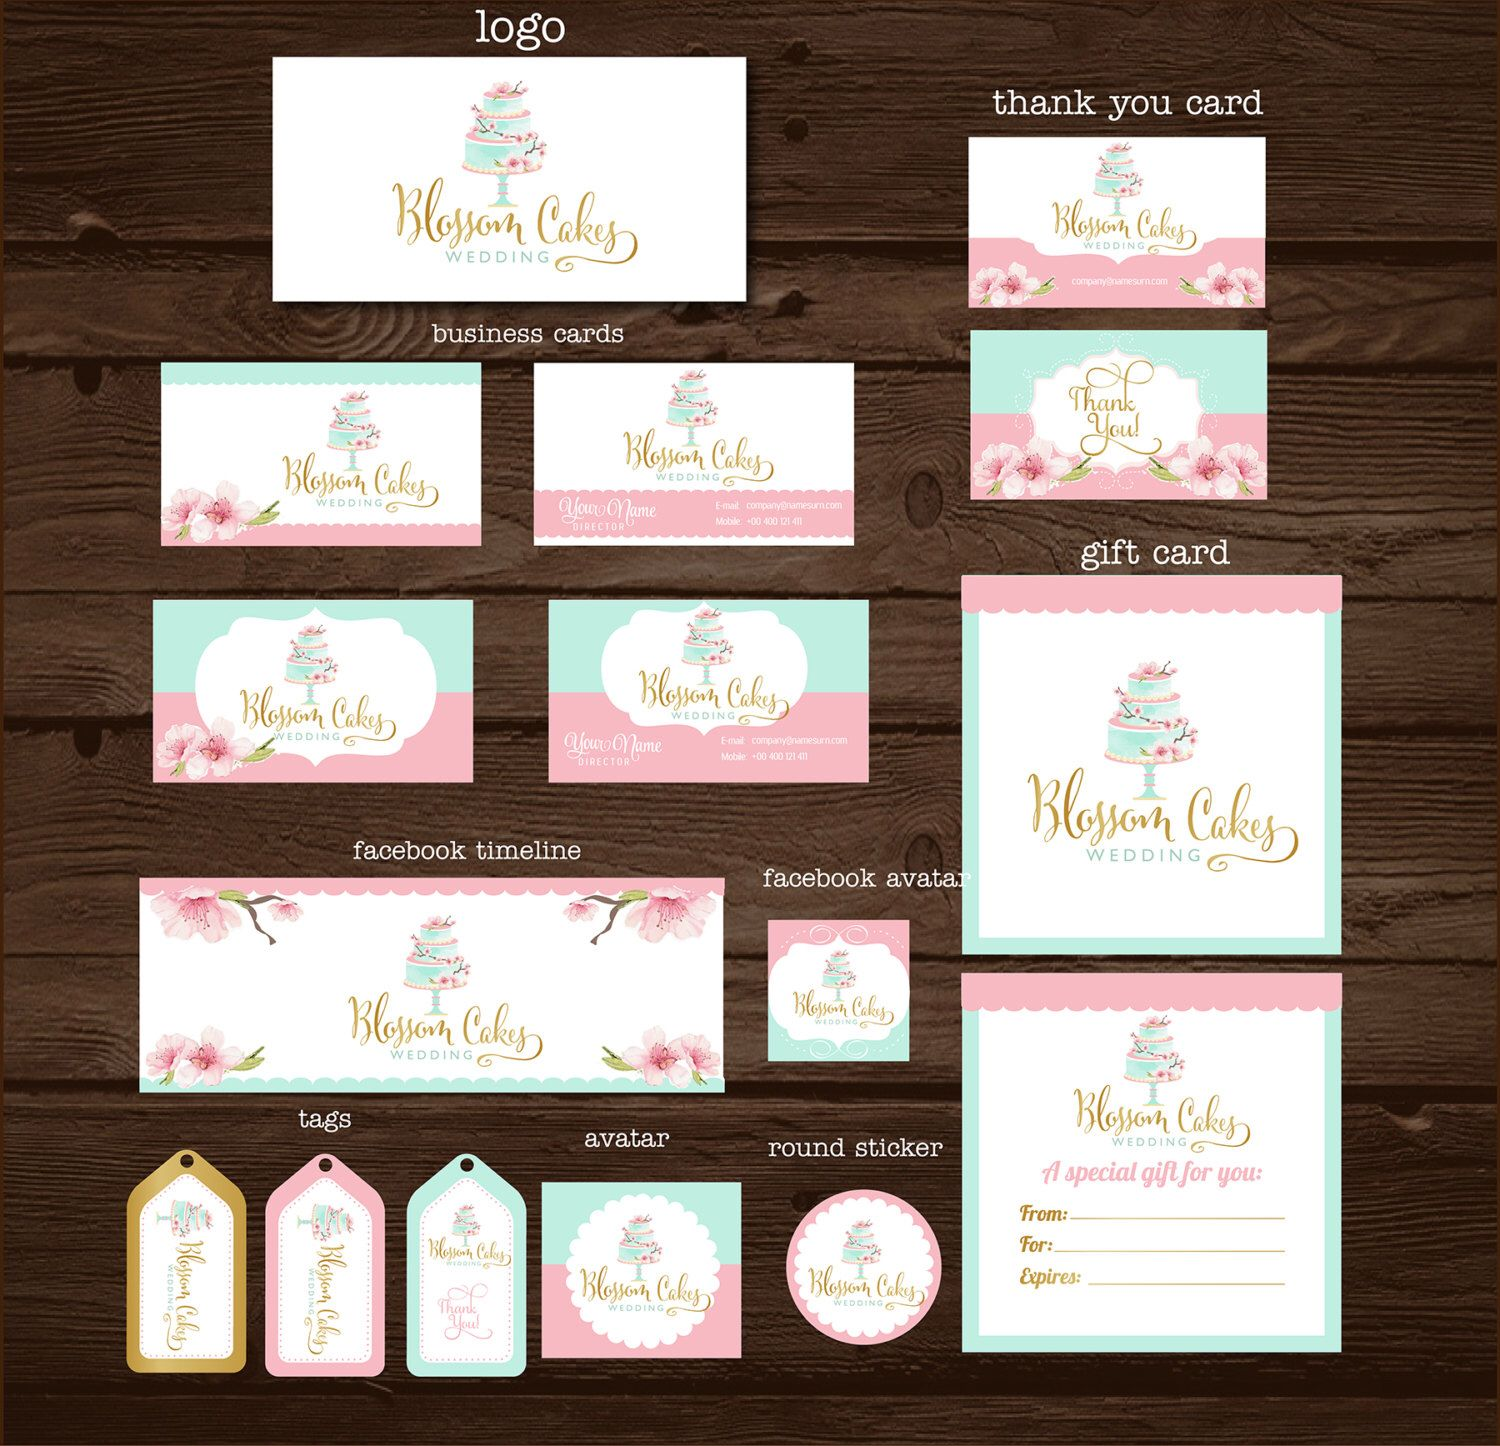 Pin by amir hossein m nejad on cake business cards pinterest cherry blossom cake cherry blossoms hand drawn logo cake logo cake business business cards card tags gift cards watercolor wedding reheart Choice Image